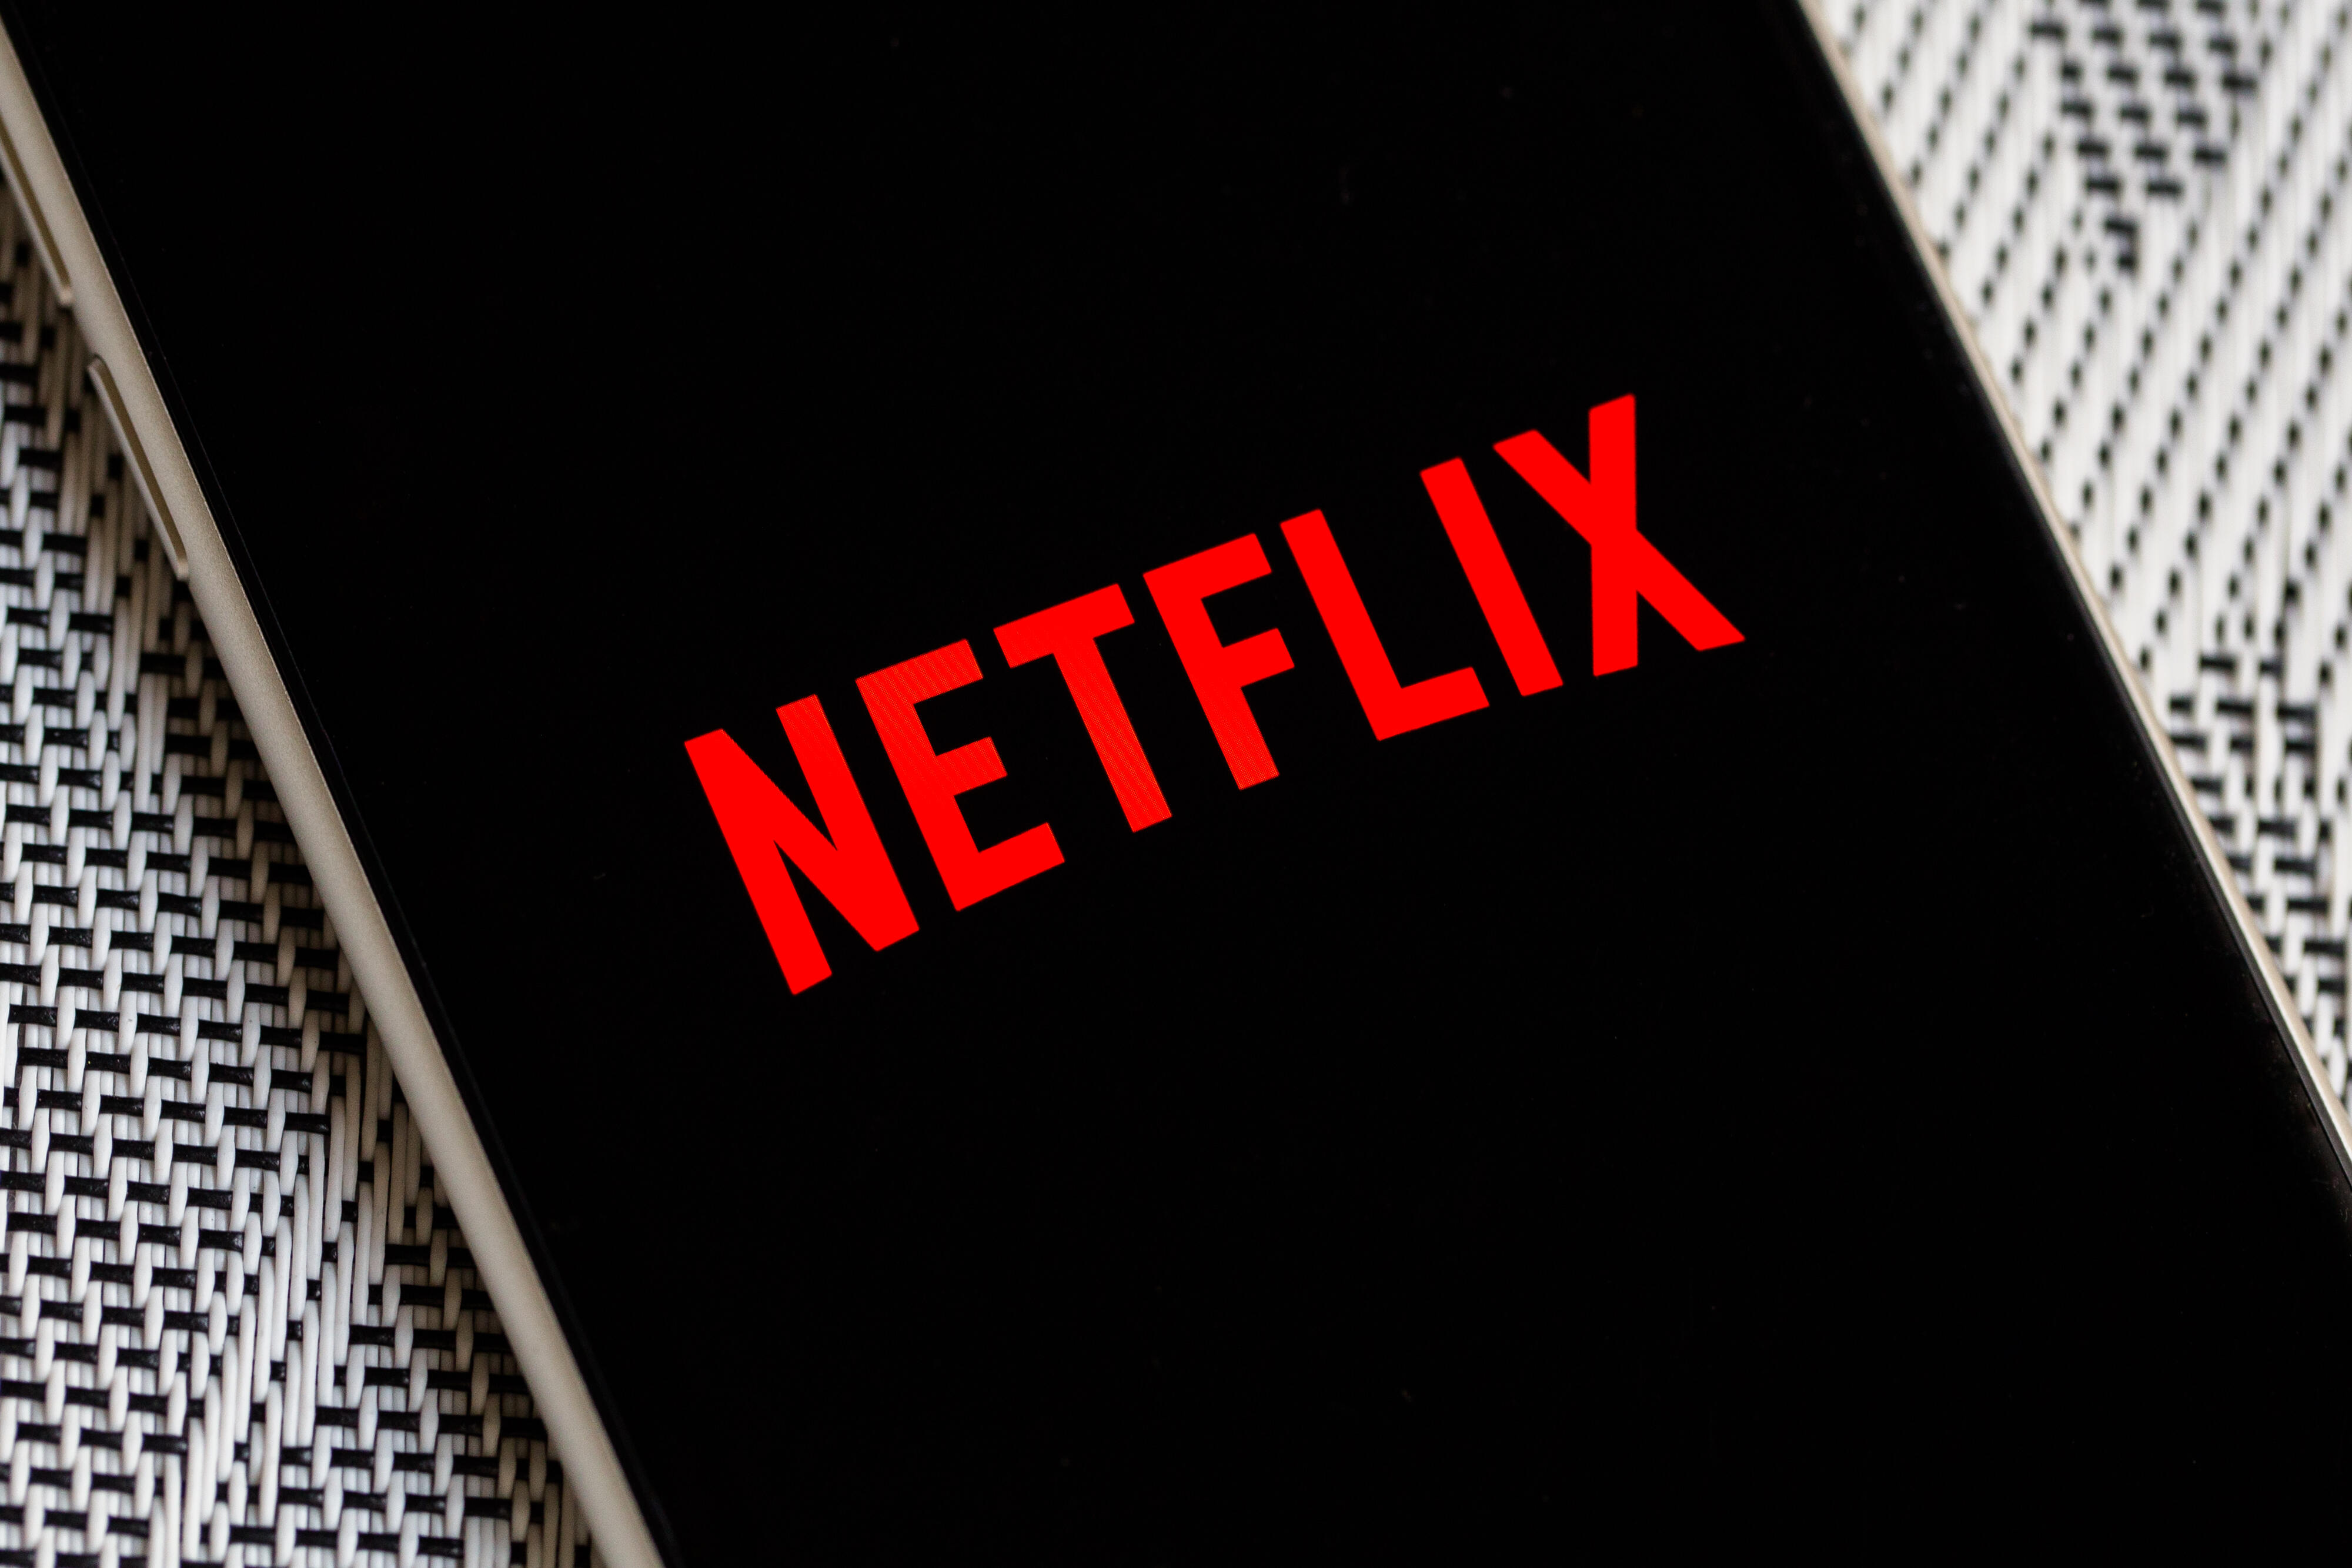 Netflix will soon stream games to your phone. 3 things to know about how it will work